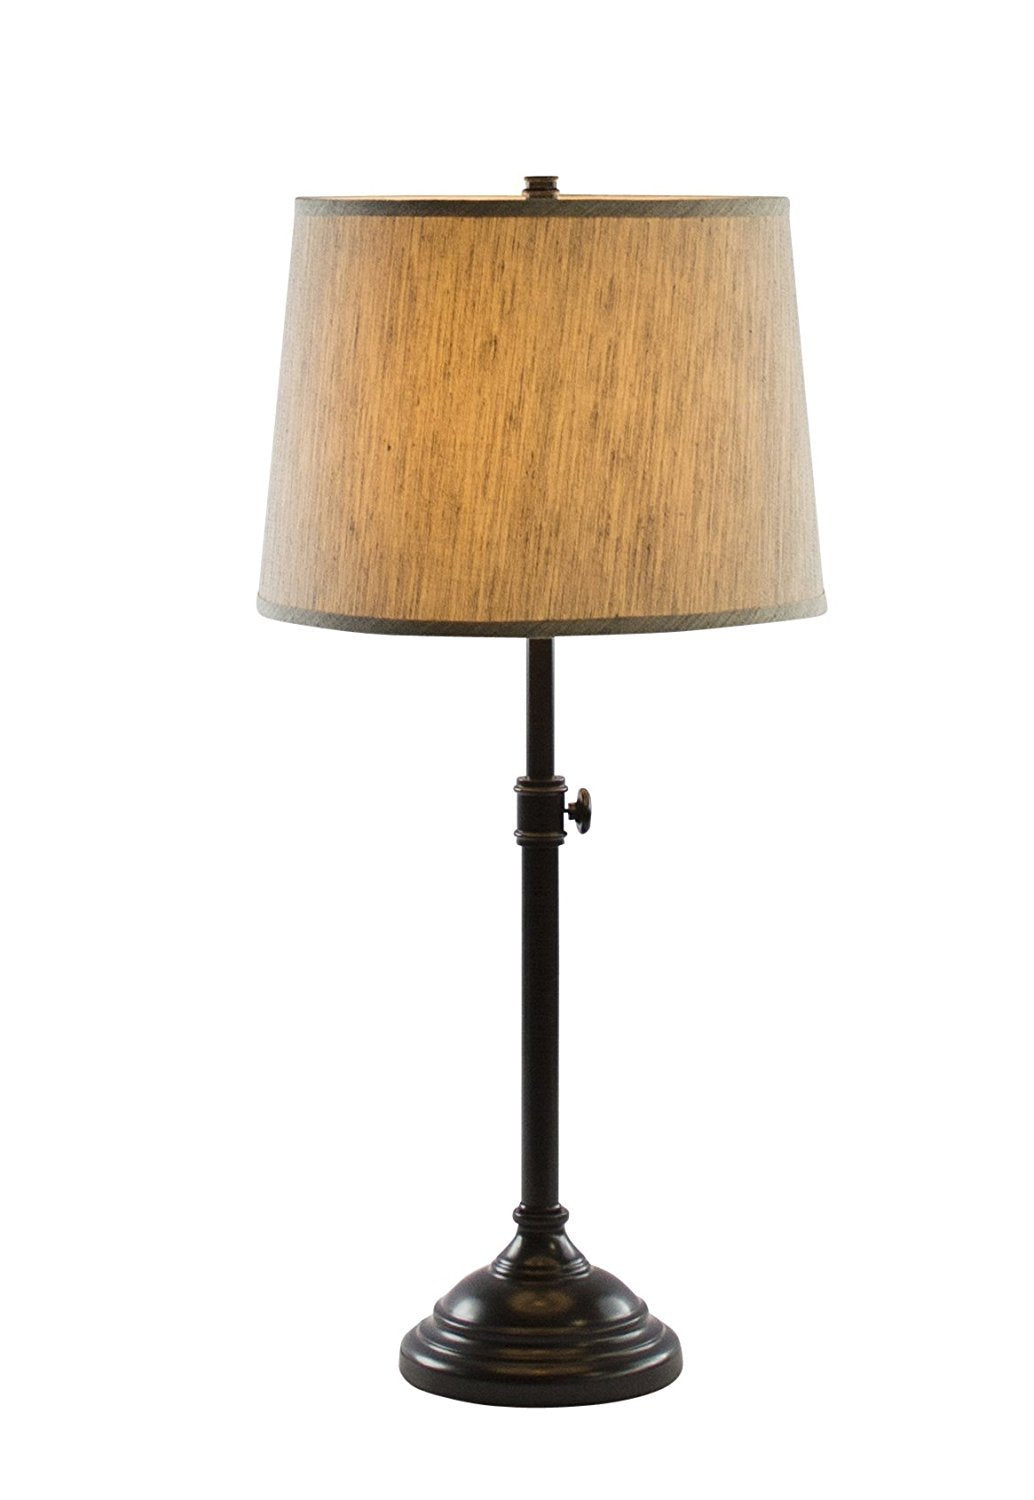 Windsor Adjustable Table Lamp, Oil-Rubbed Bronze Finish Lamp Base with Gray Tone Natural Linen Lampshade